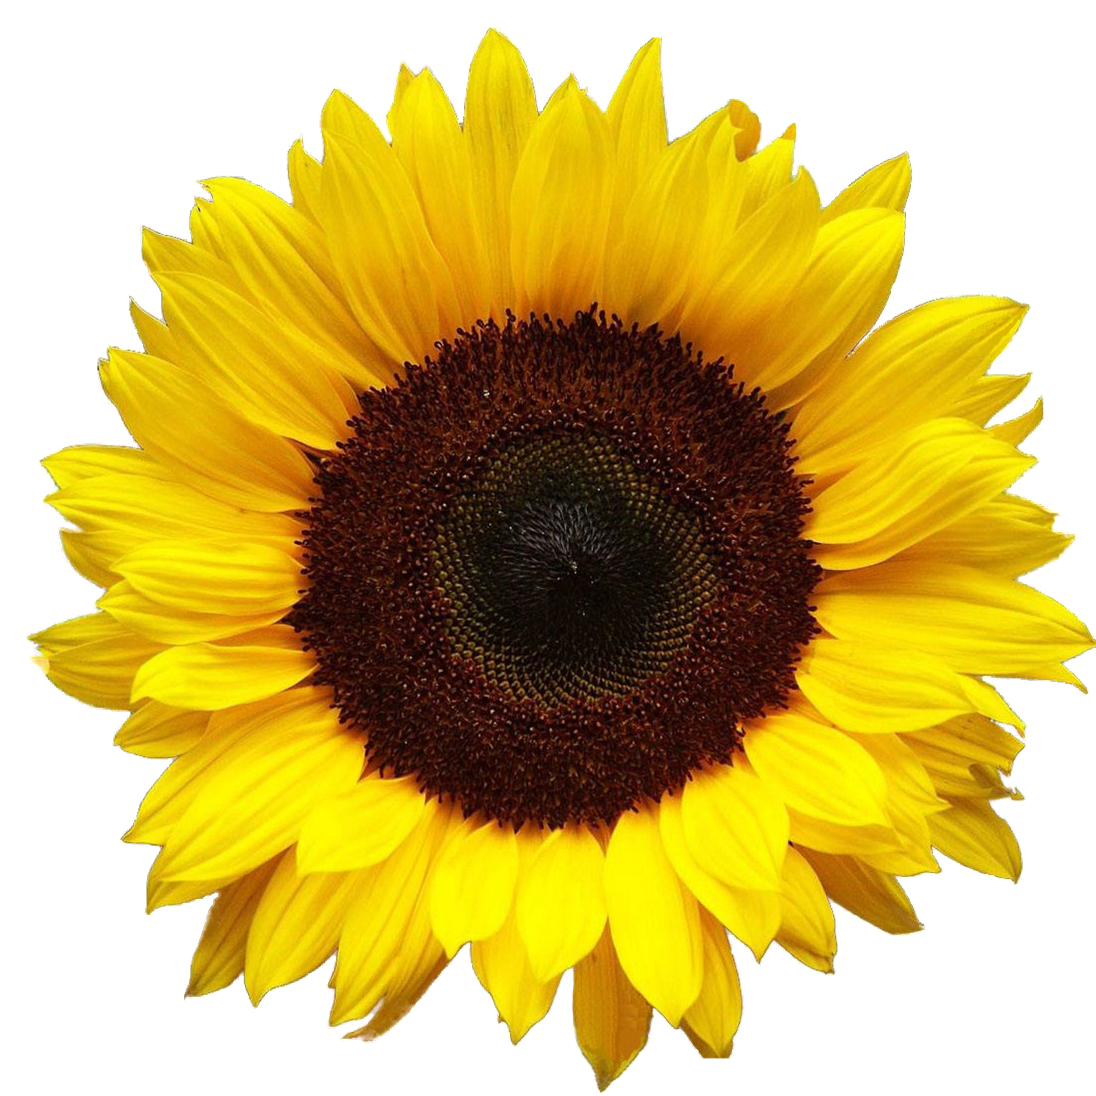 Fall Sunflower Png - Sunflower PNG images free download